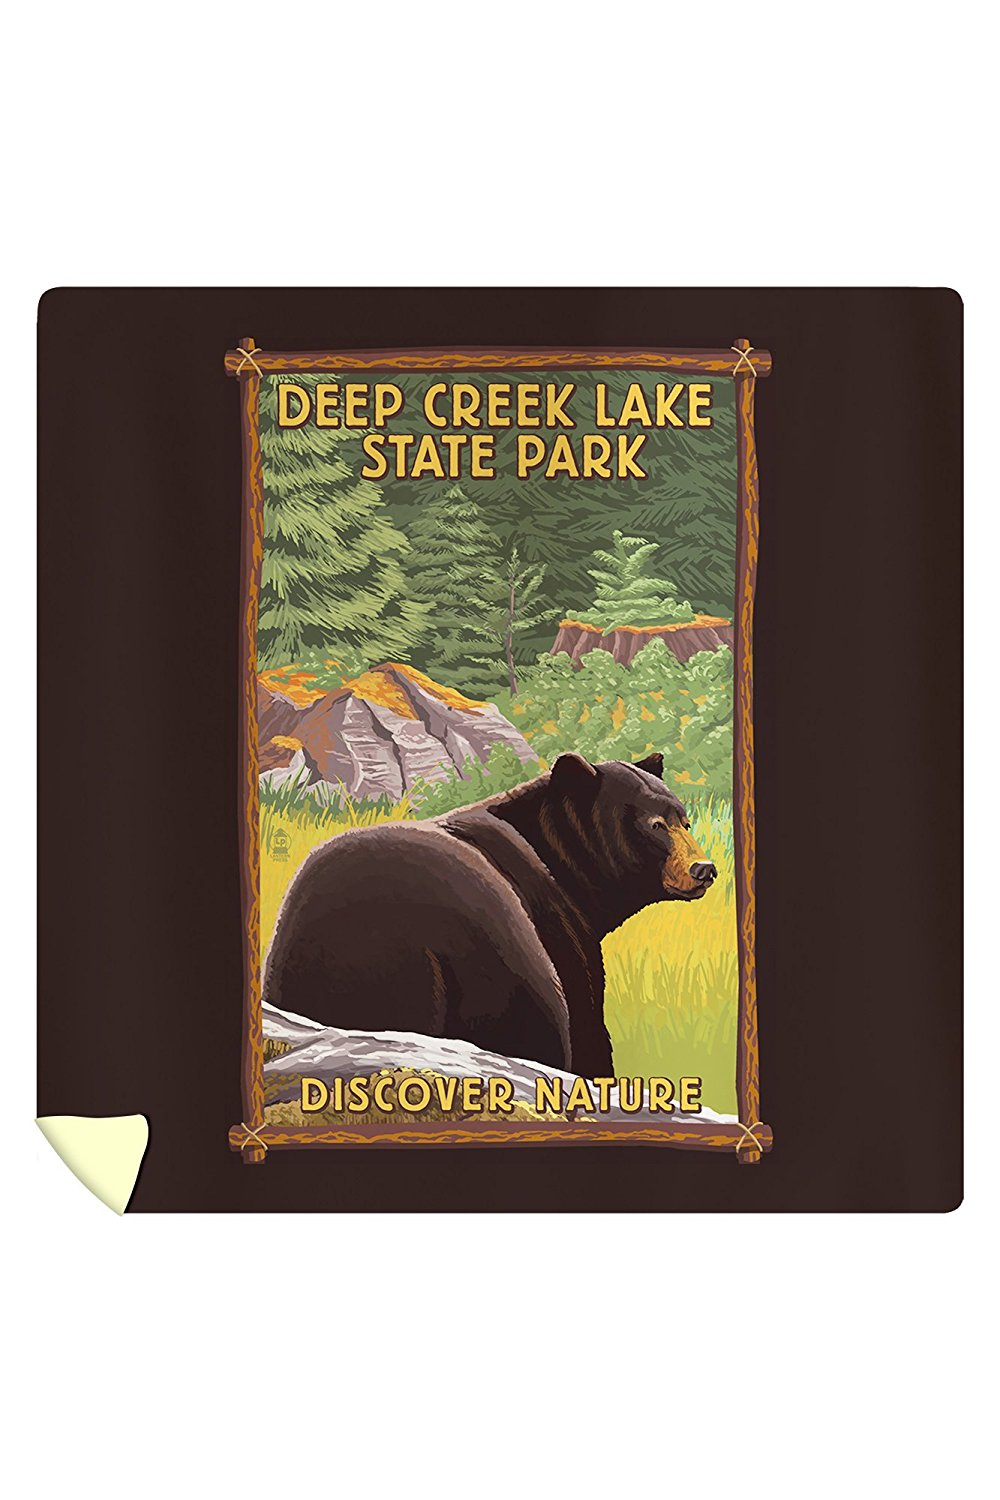 Deep Creek Lake State Park, Maryland - Bear in Forest (88x88 Queen Microfiber Duvet Cover)